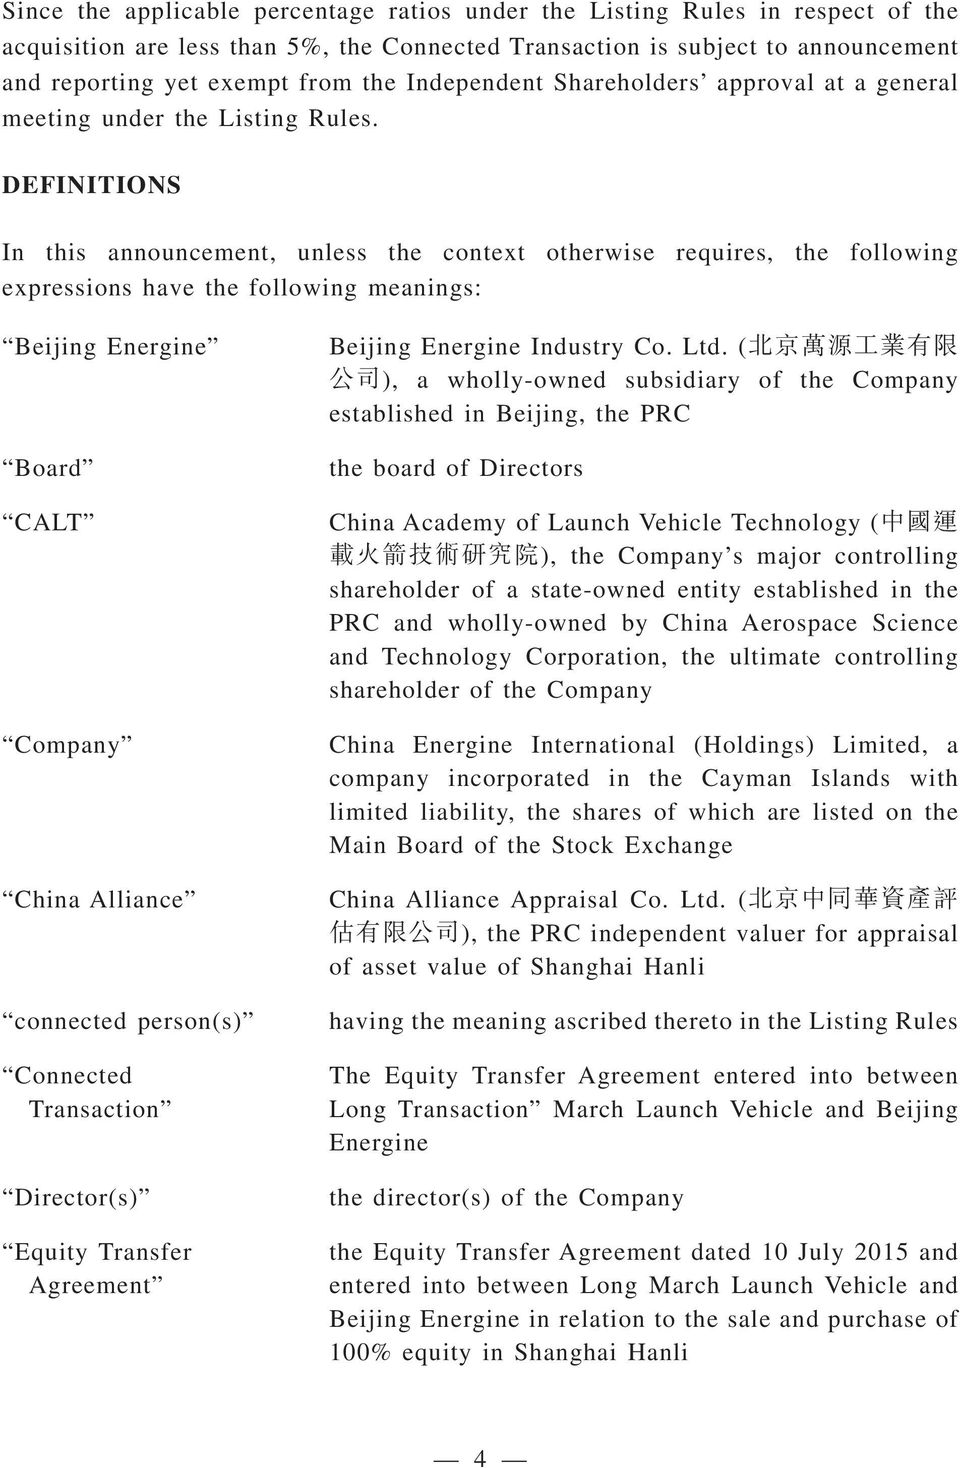 DEFINITIONS In this announcement, unless the context otherwise requires, the following expressions have the following meanings: Beijing Energine Board CALT Beijing Energine Industry Co. Ltd.